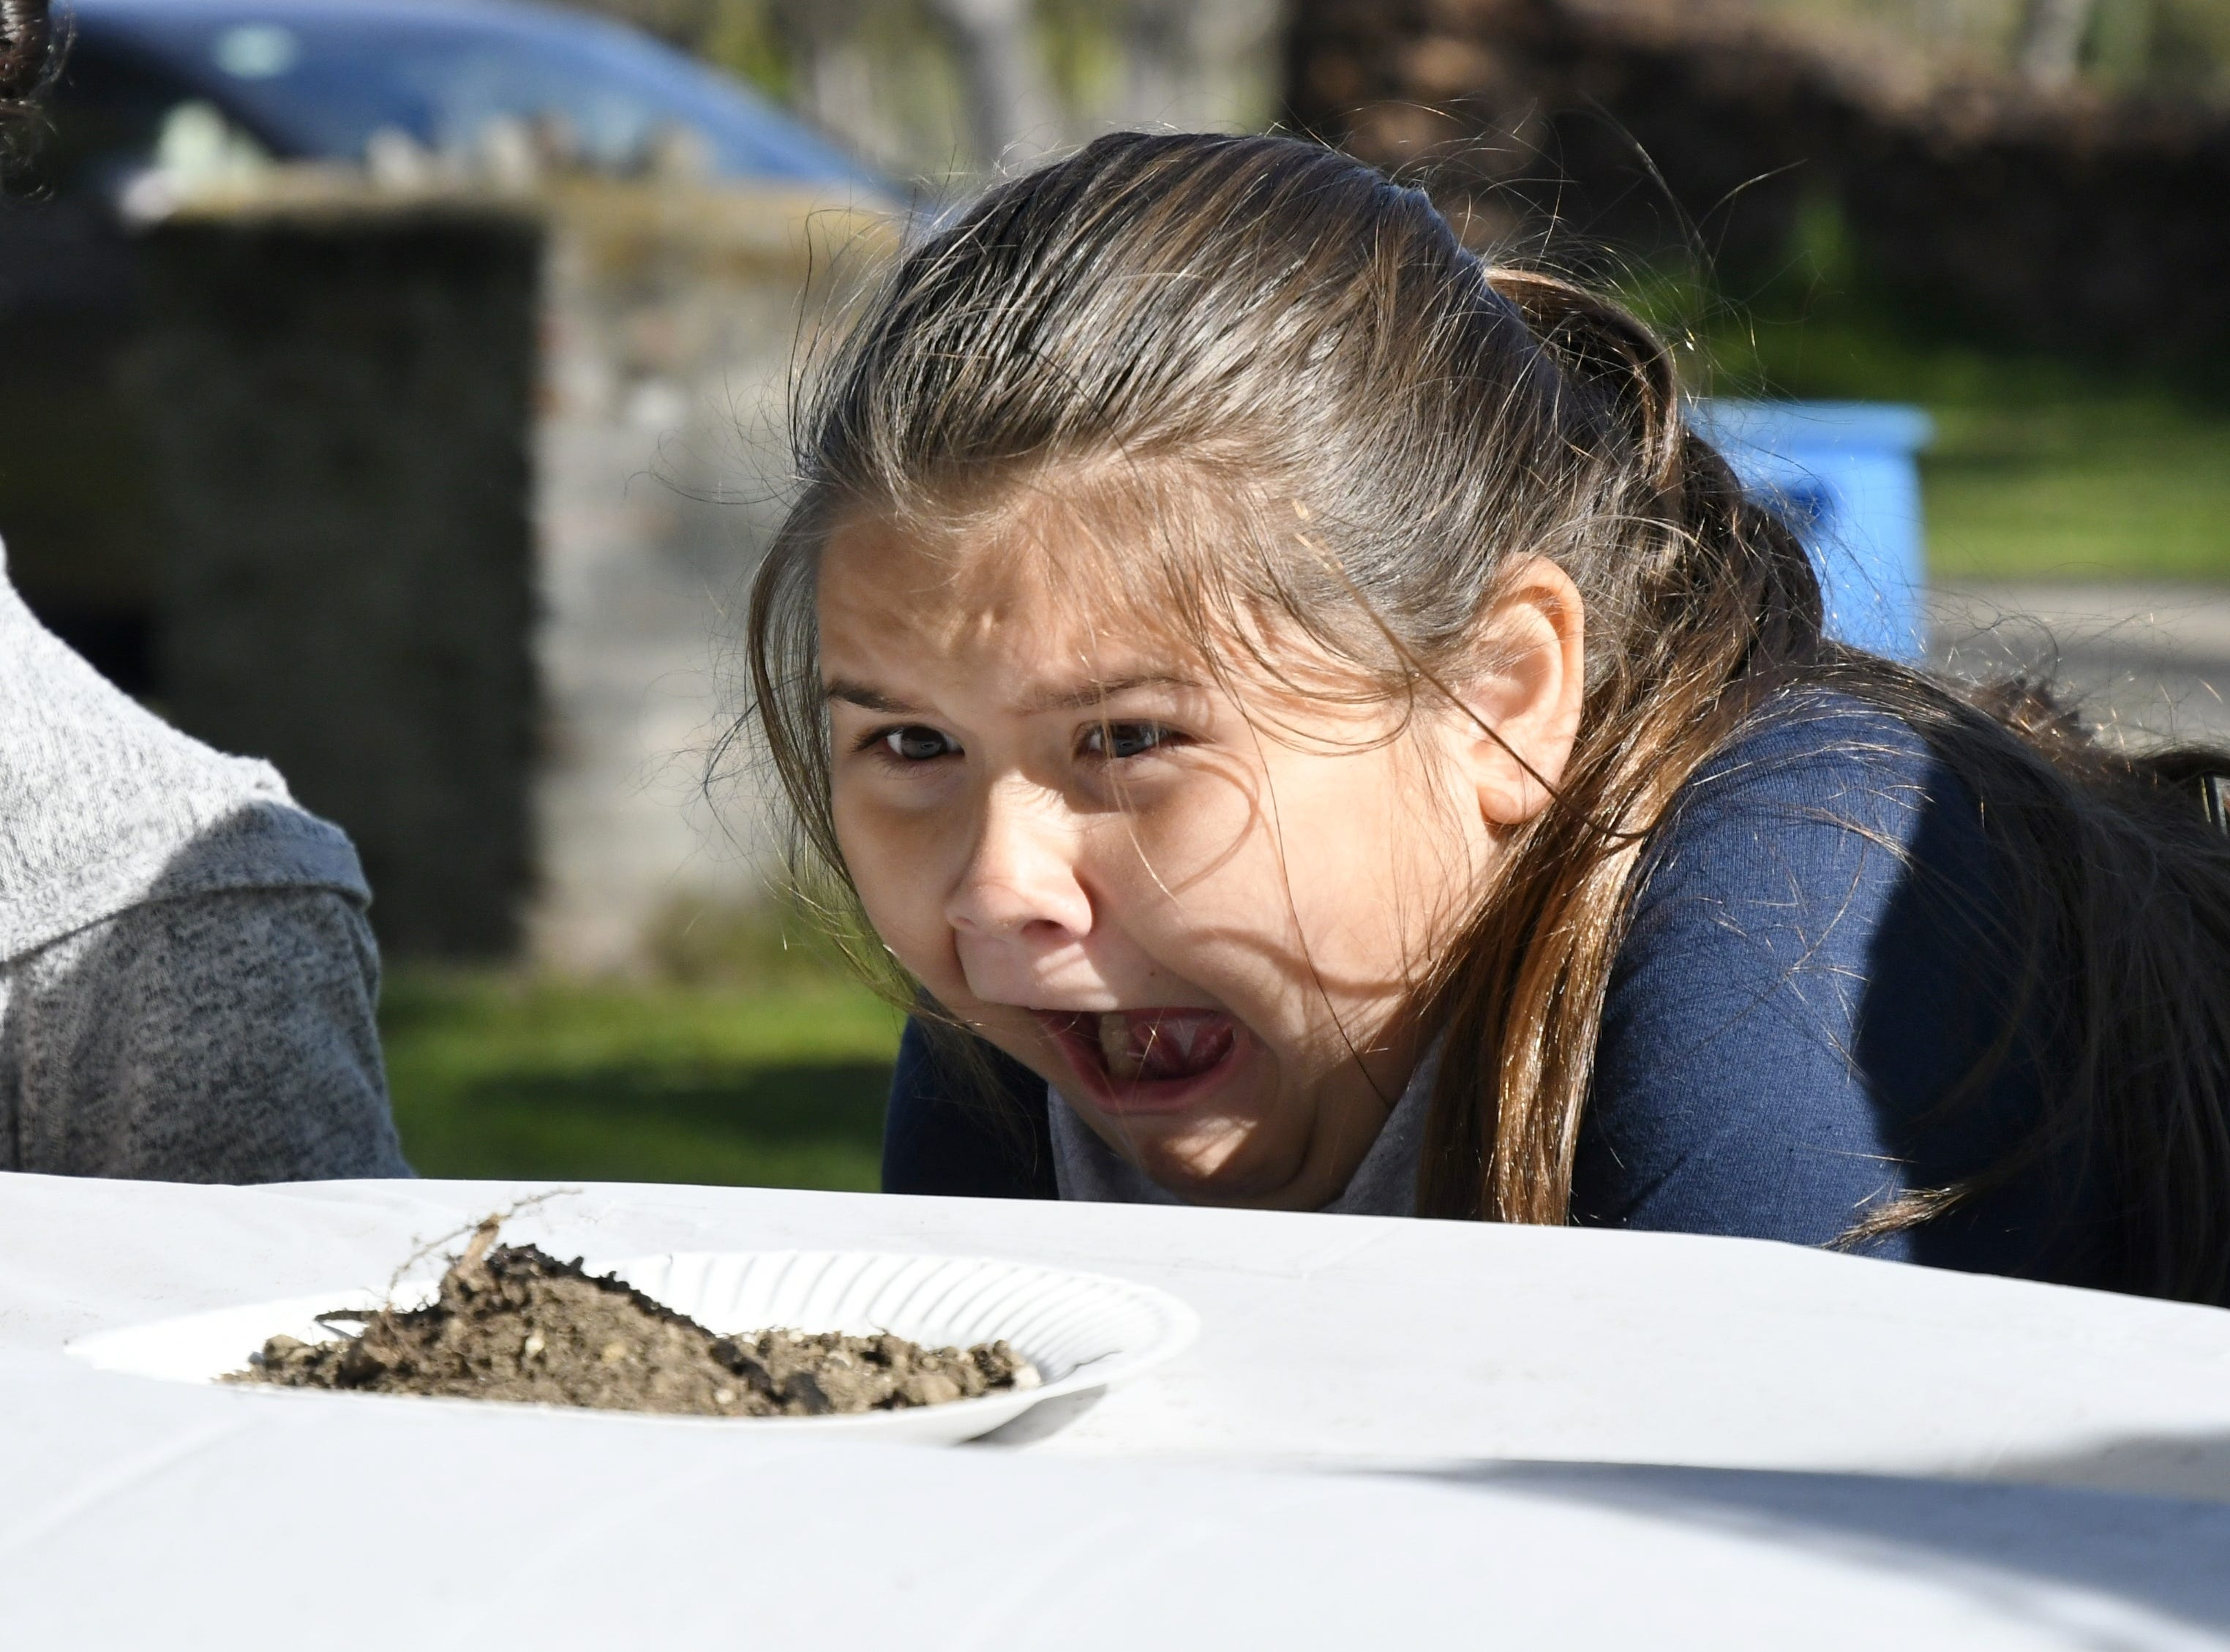 Liberty Elementary fourth grader Chloe Porter, 10, reacts to seeing a worm at TCOE's Arbor Day event at Mooney Grove Park on Thursday, March 28, 2019.